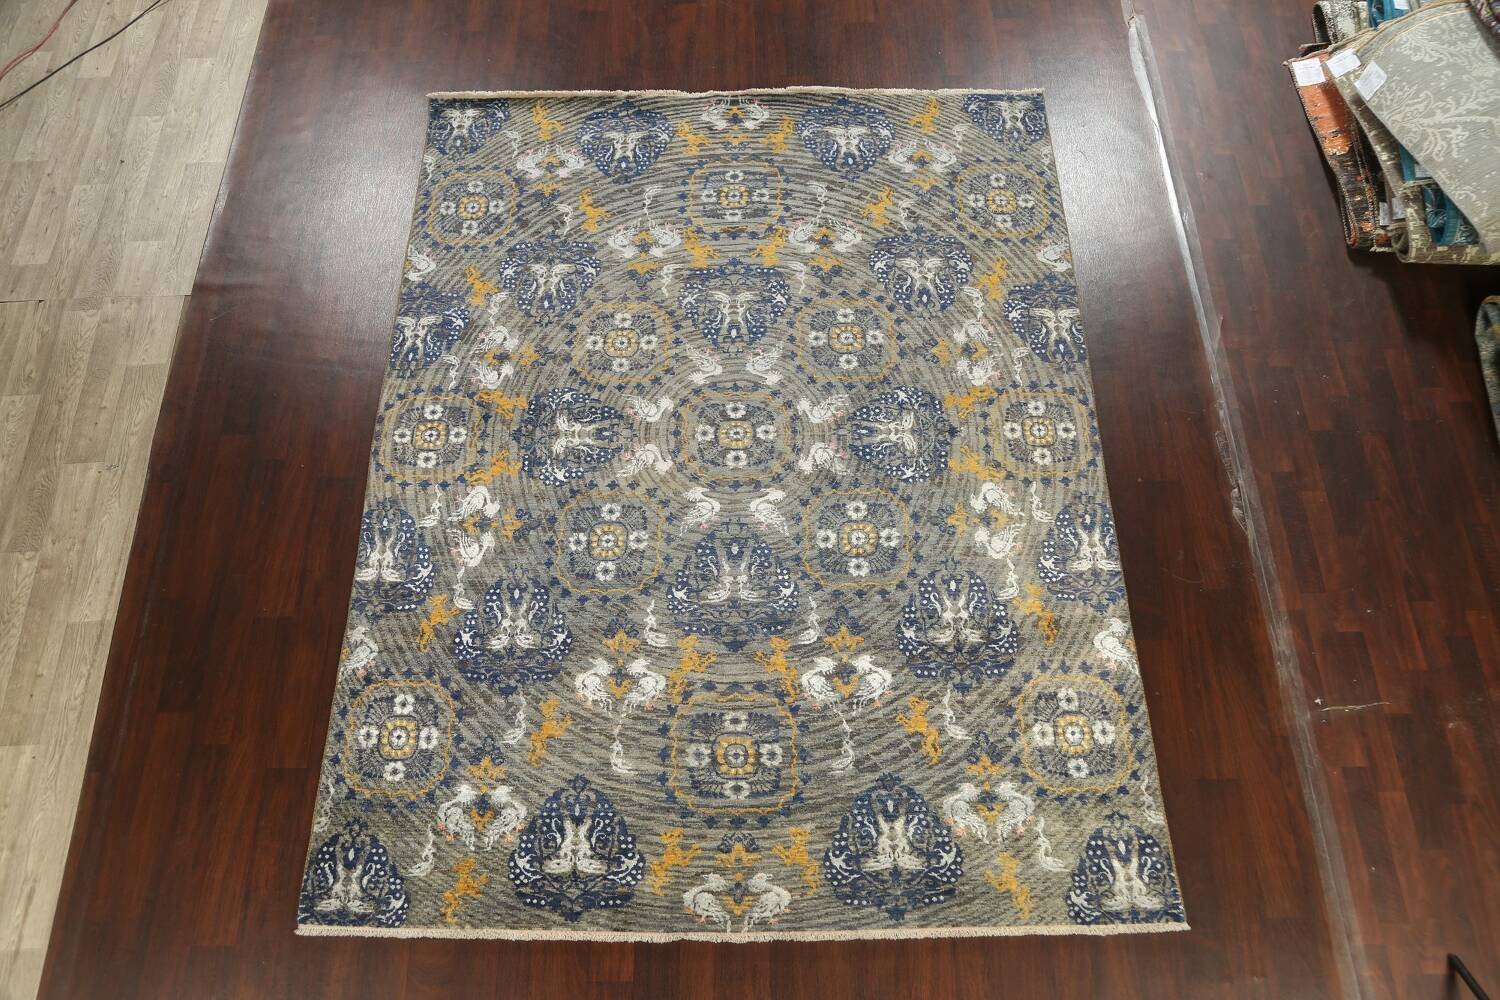 Vegetable Dye Animal Pictorial Abstract Oriental Area Rug 8x11 image 2